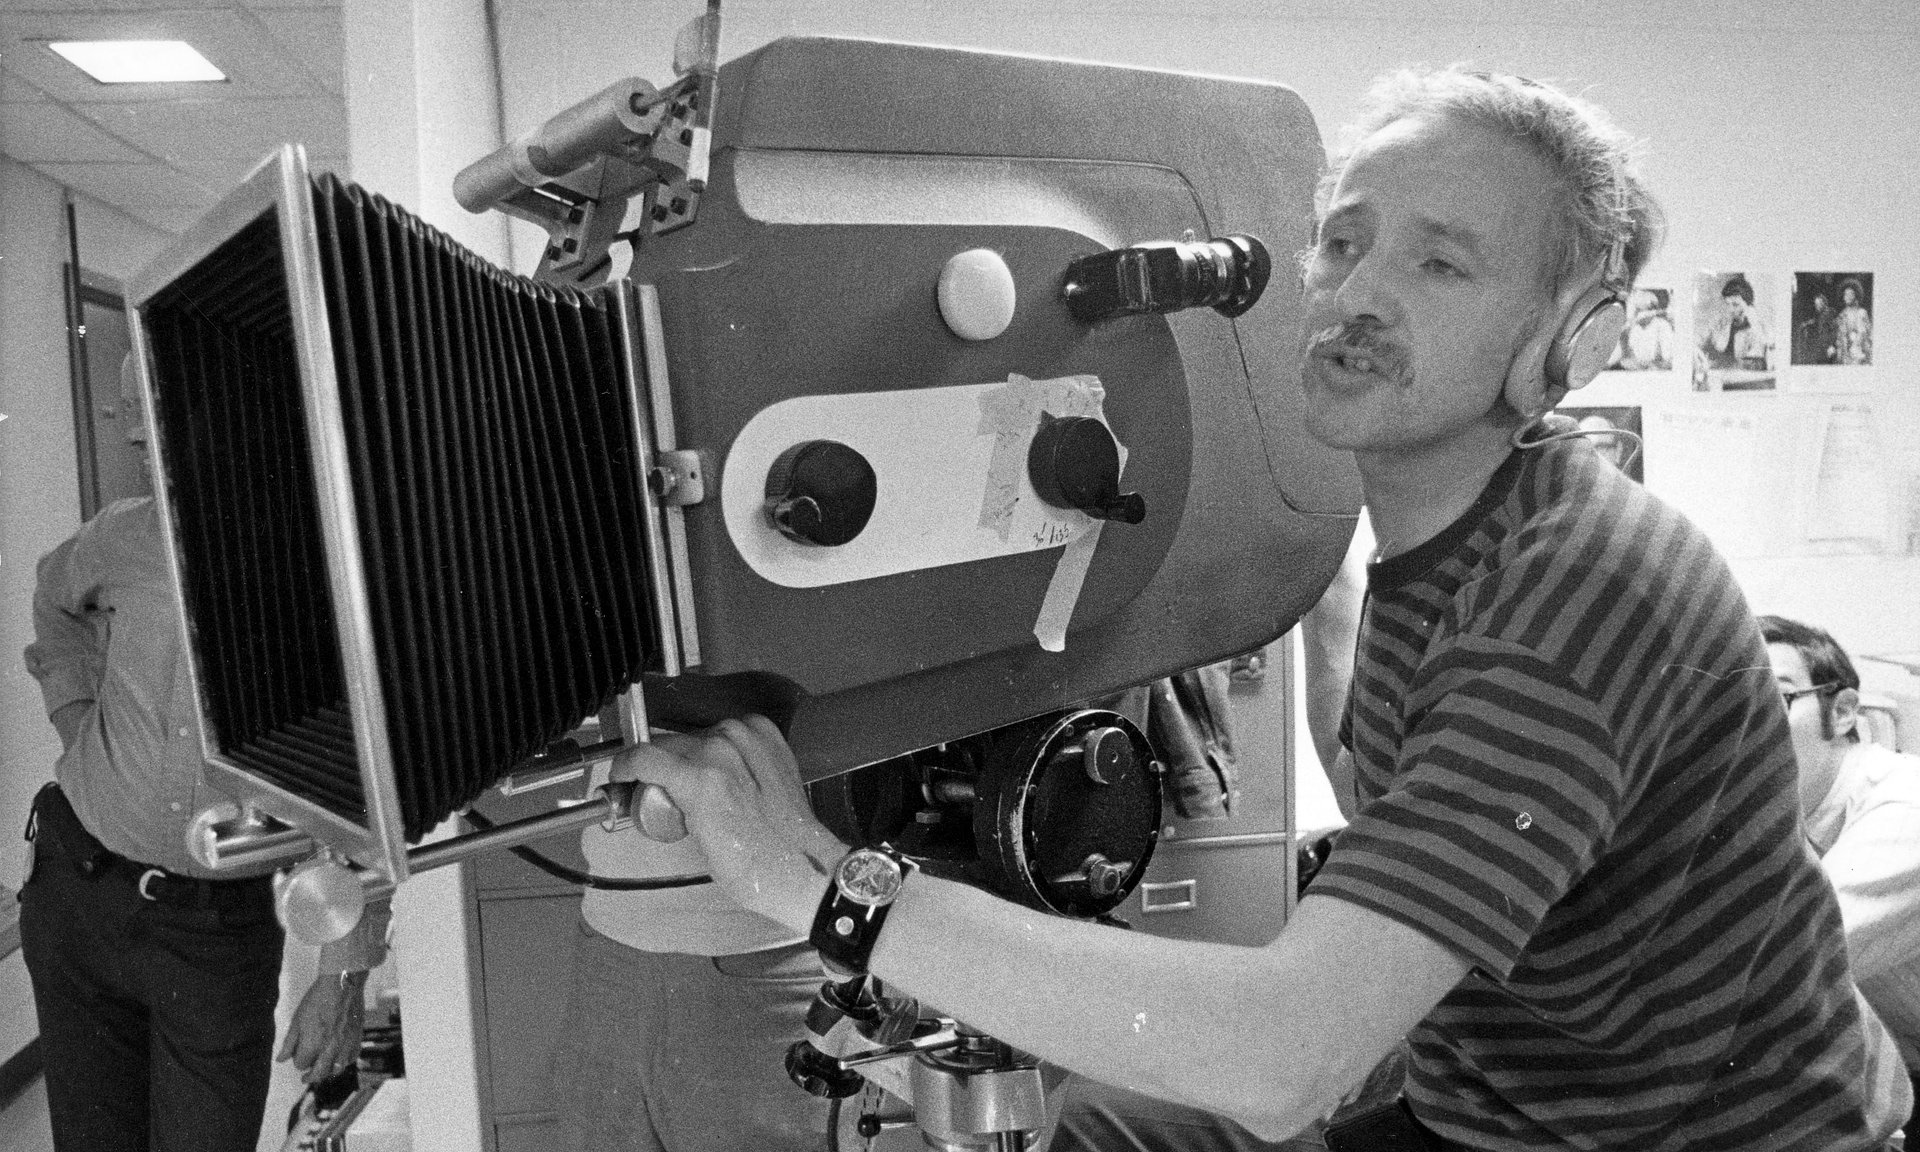 """Medium Cool"" director Haskell Wexler manning the camera."